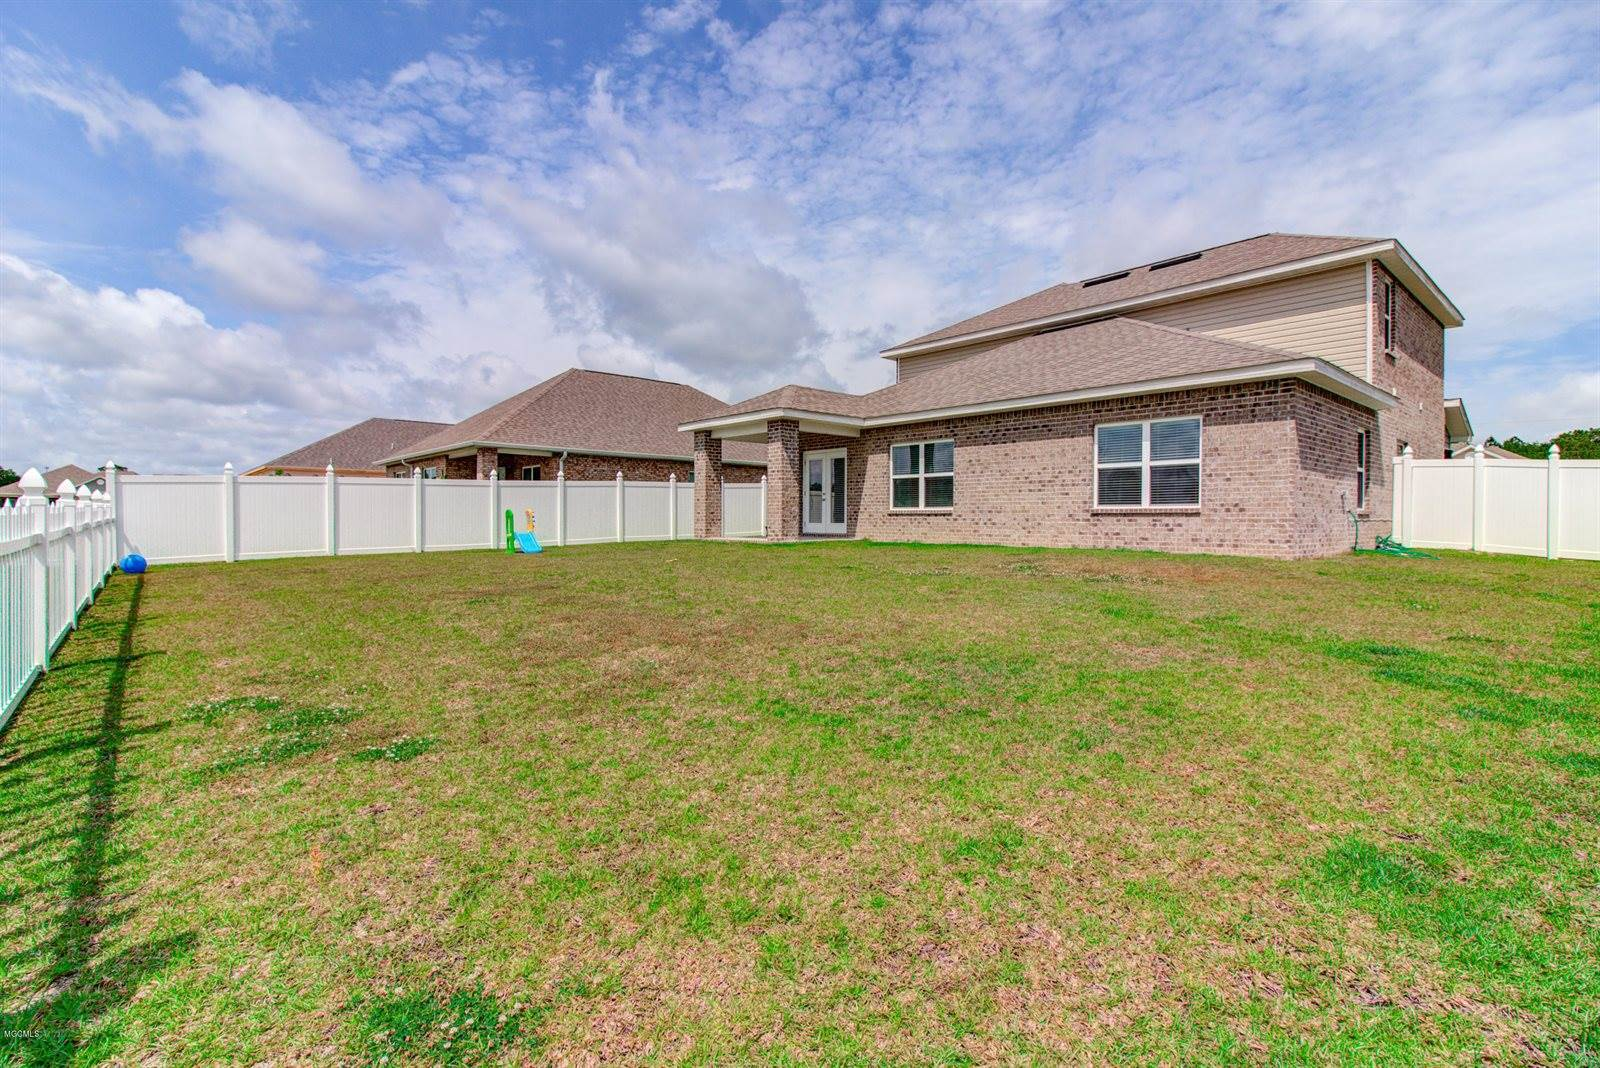 10215 Little Gem Dr, Gulfport, MS 39503